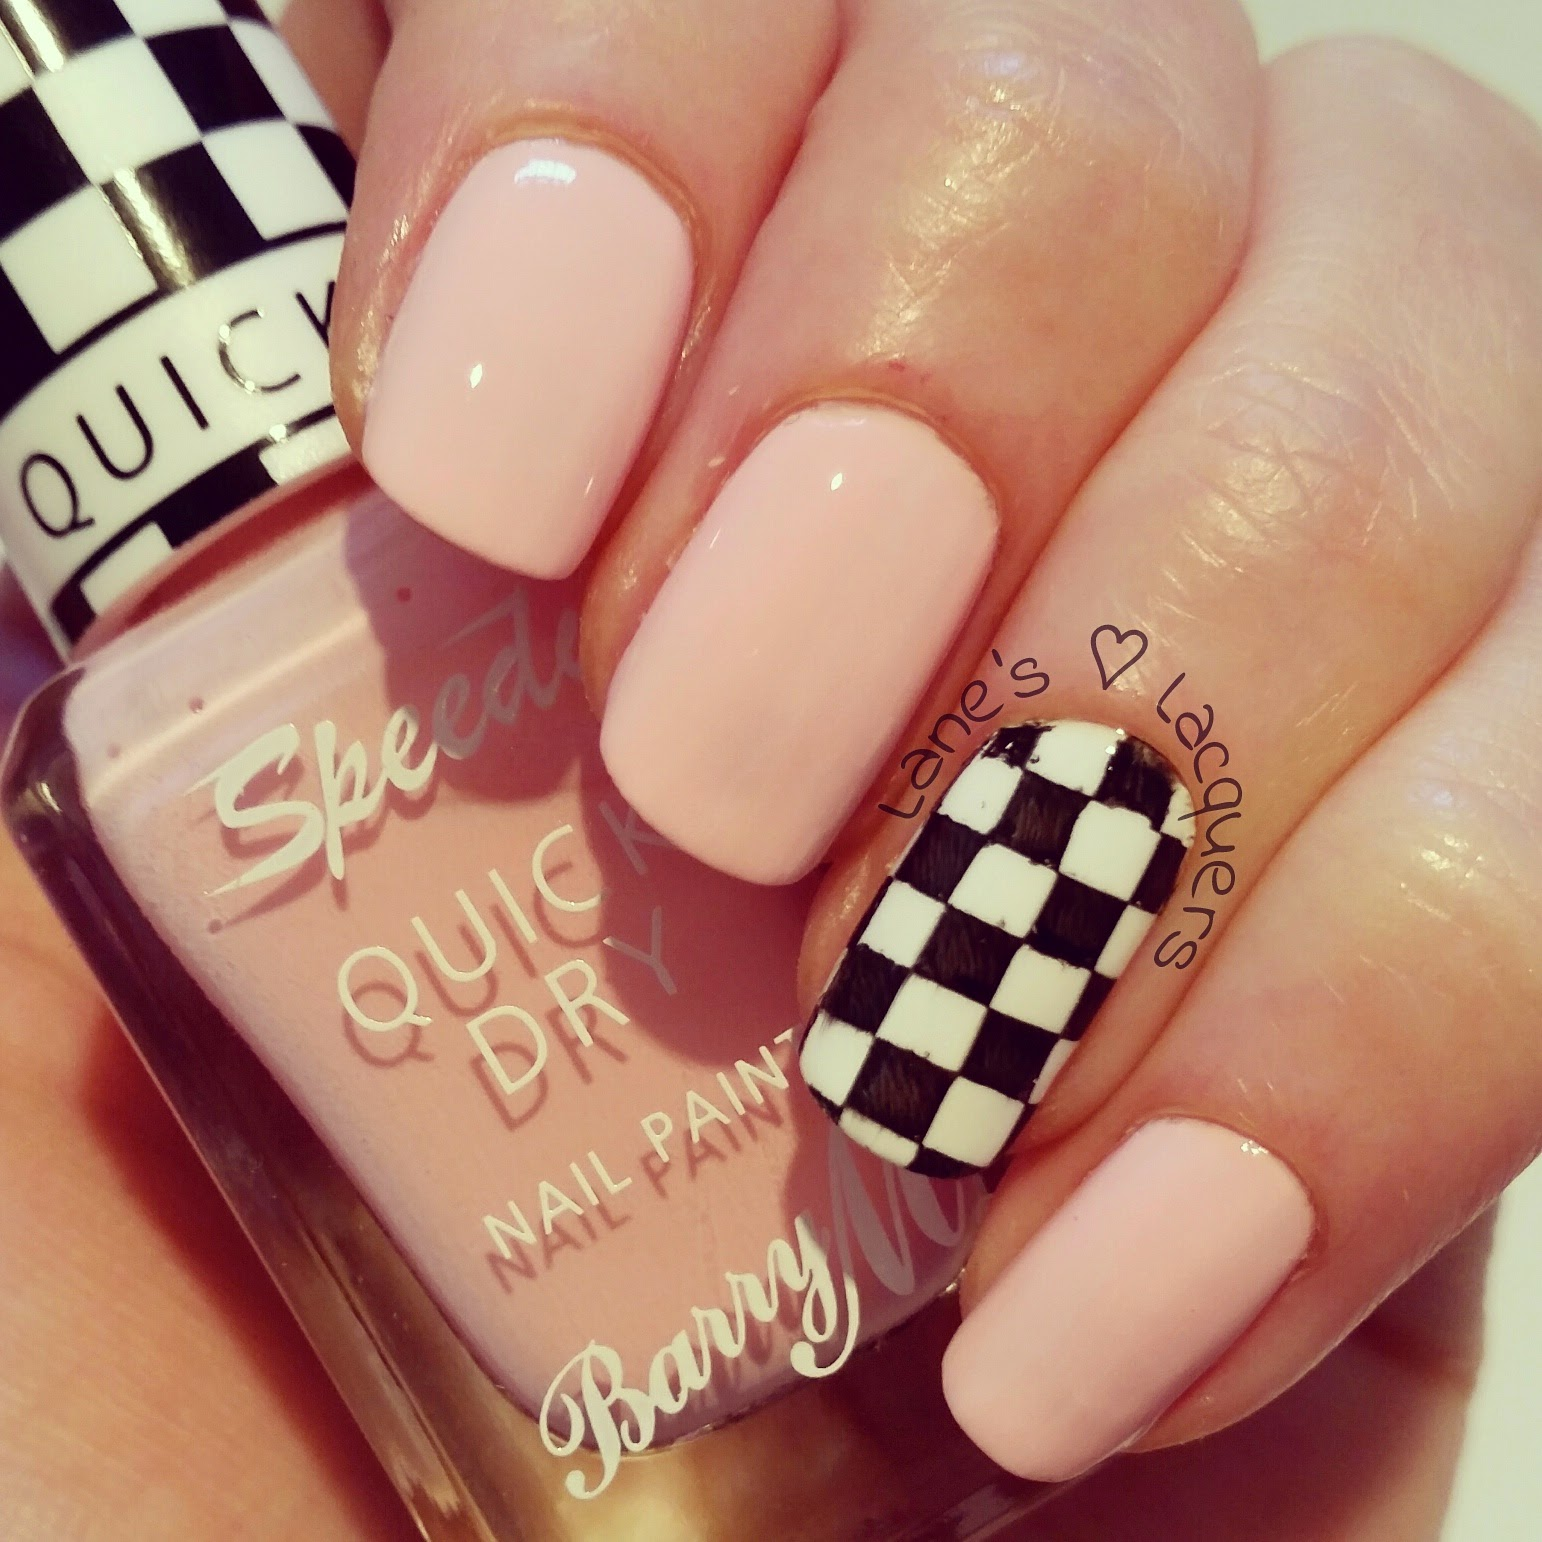 new-barry-m-speedy-quick-dry-kiss-me-quick-swatch-manicure (2)